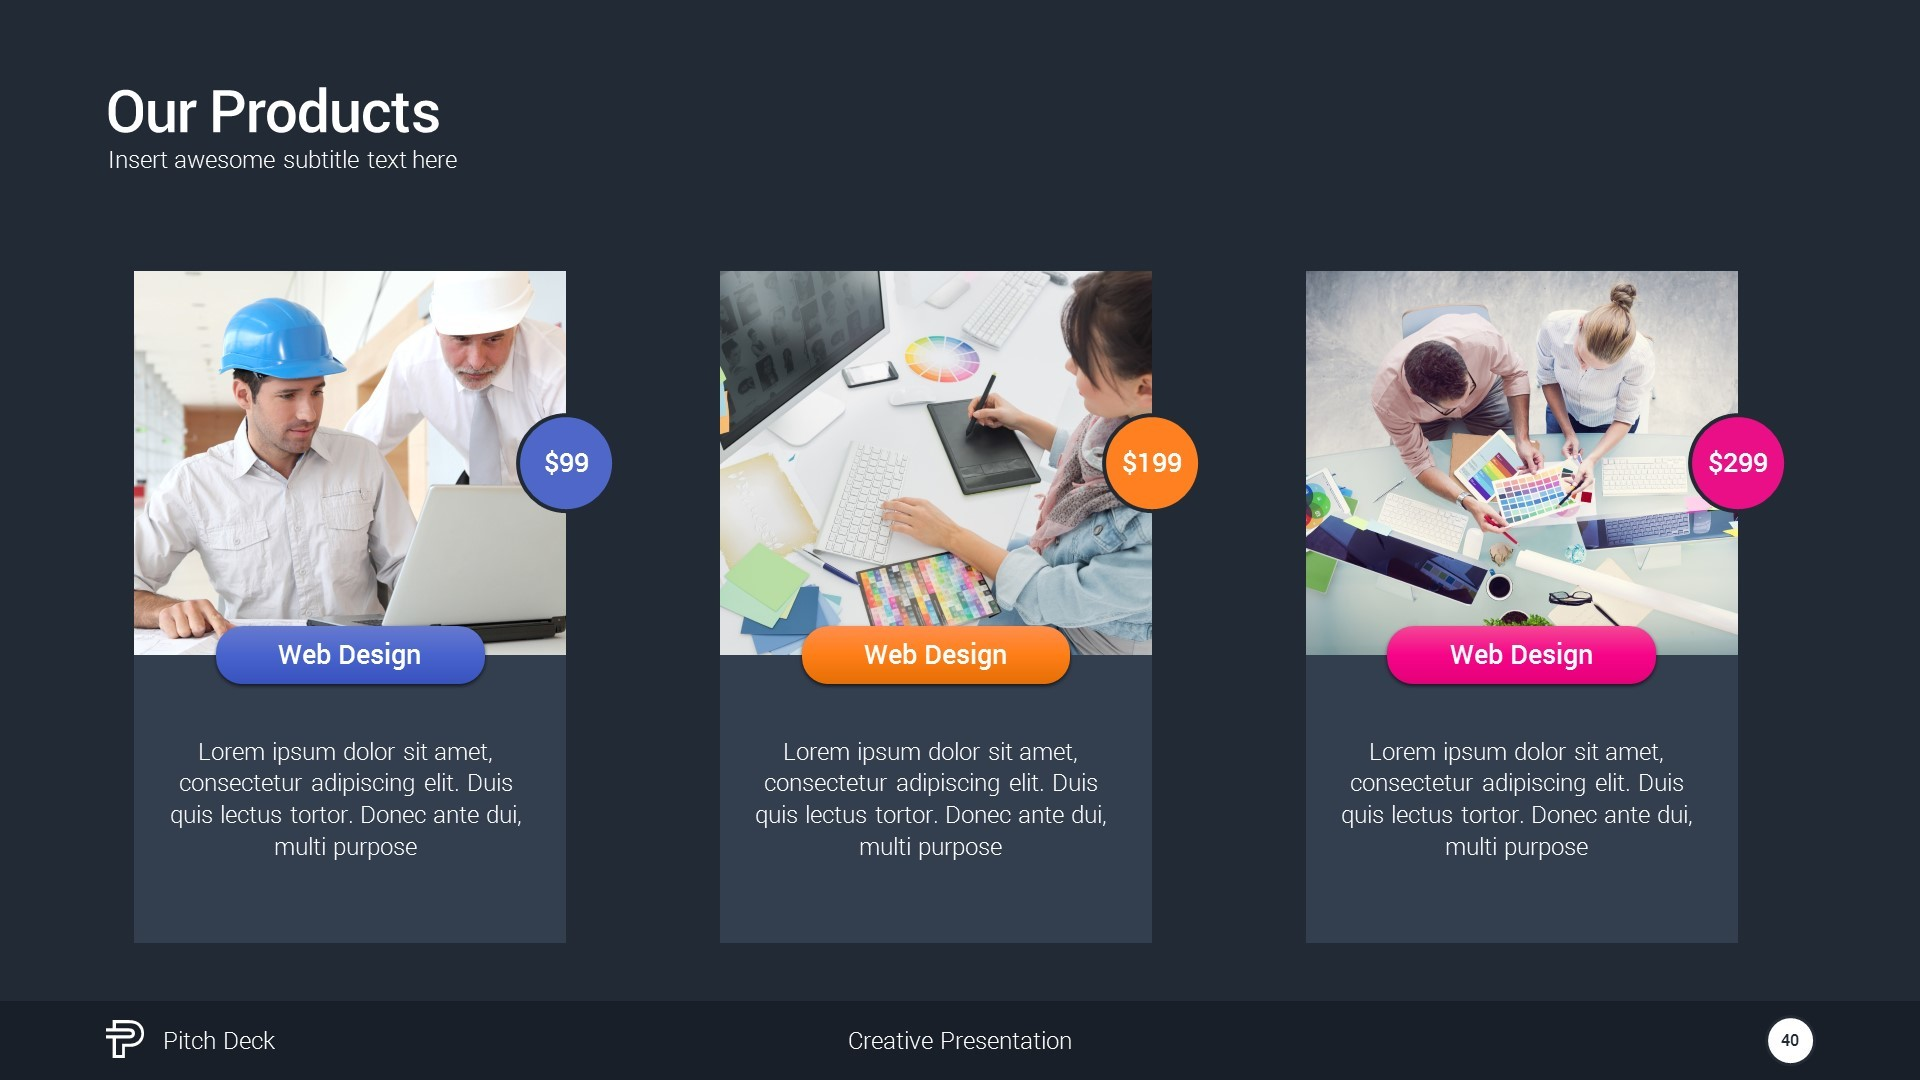 Creative pitch deck powerpoint template by pptx graphicriver jpg screenshotspitch deck 040 alramifo Images